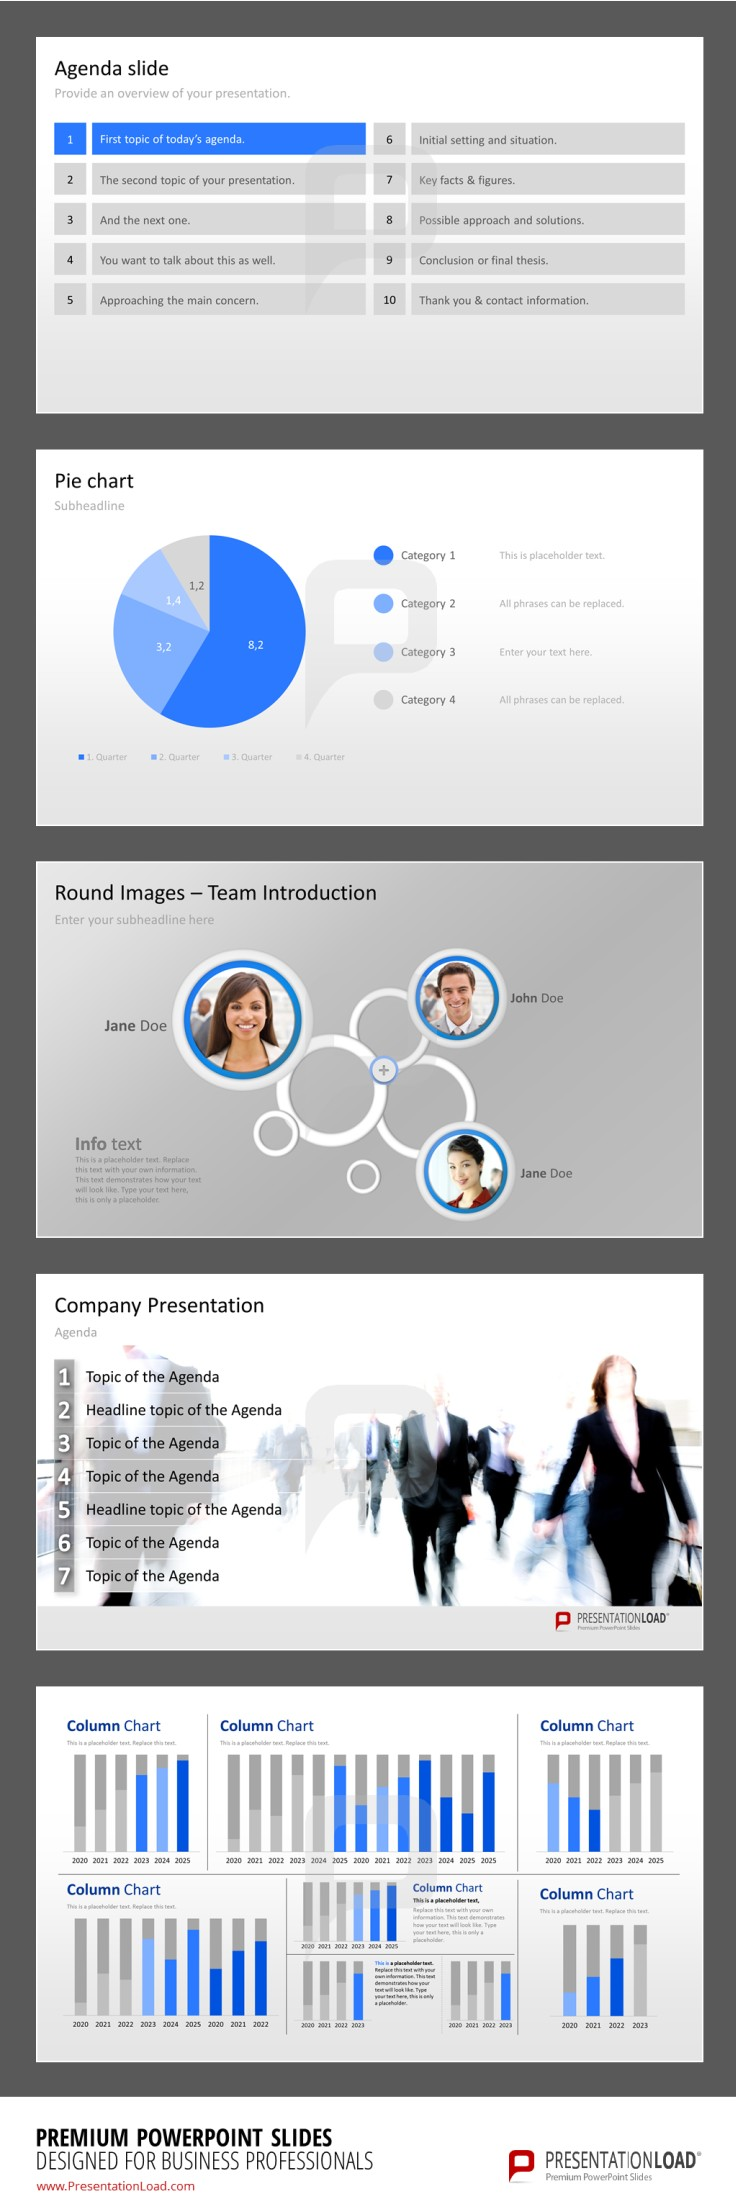 177 best POWERPOINT TEMPLATES images on Pinterest | Role models ...